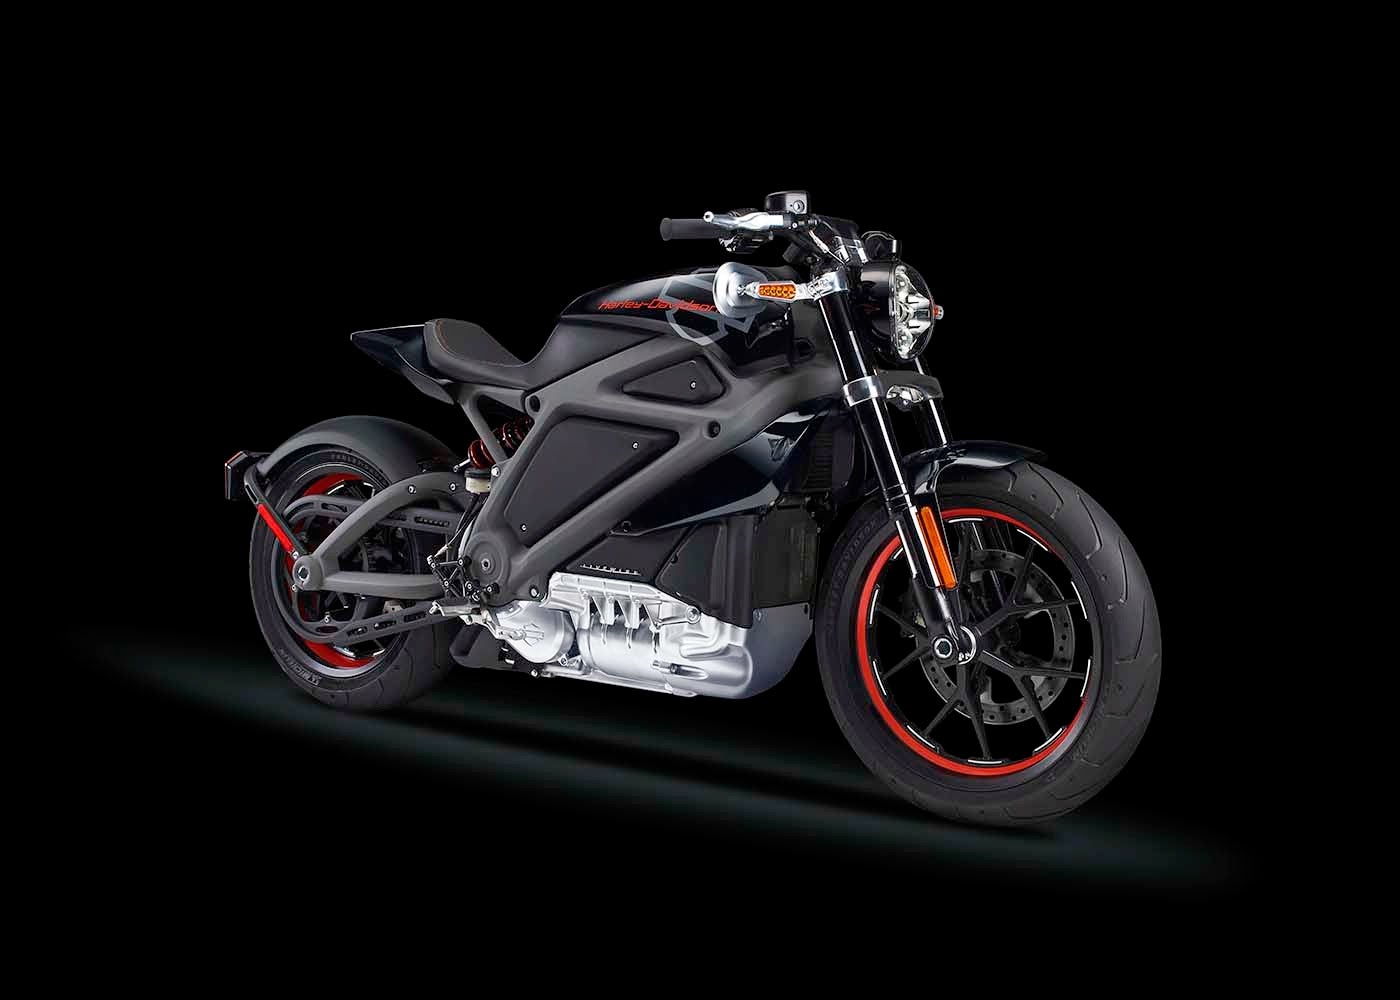 harley-davidson unveils the livewire - its first-ever electric